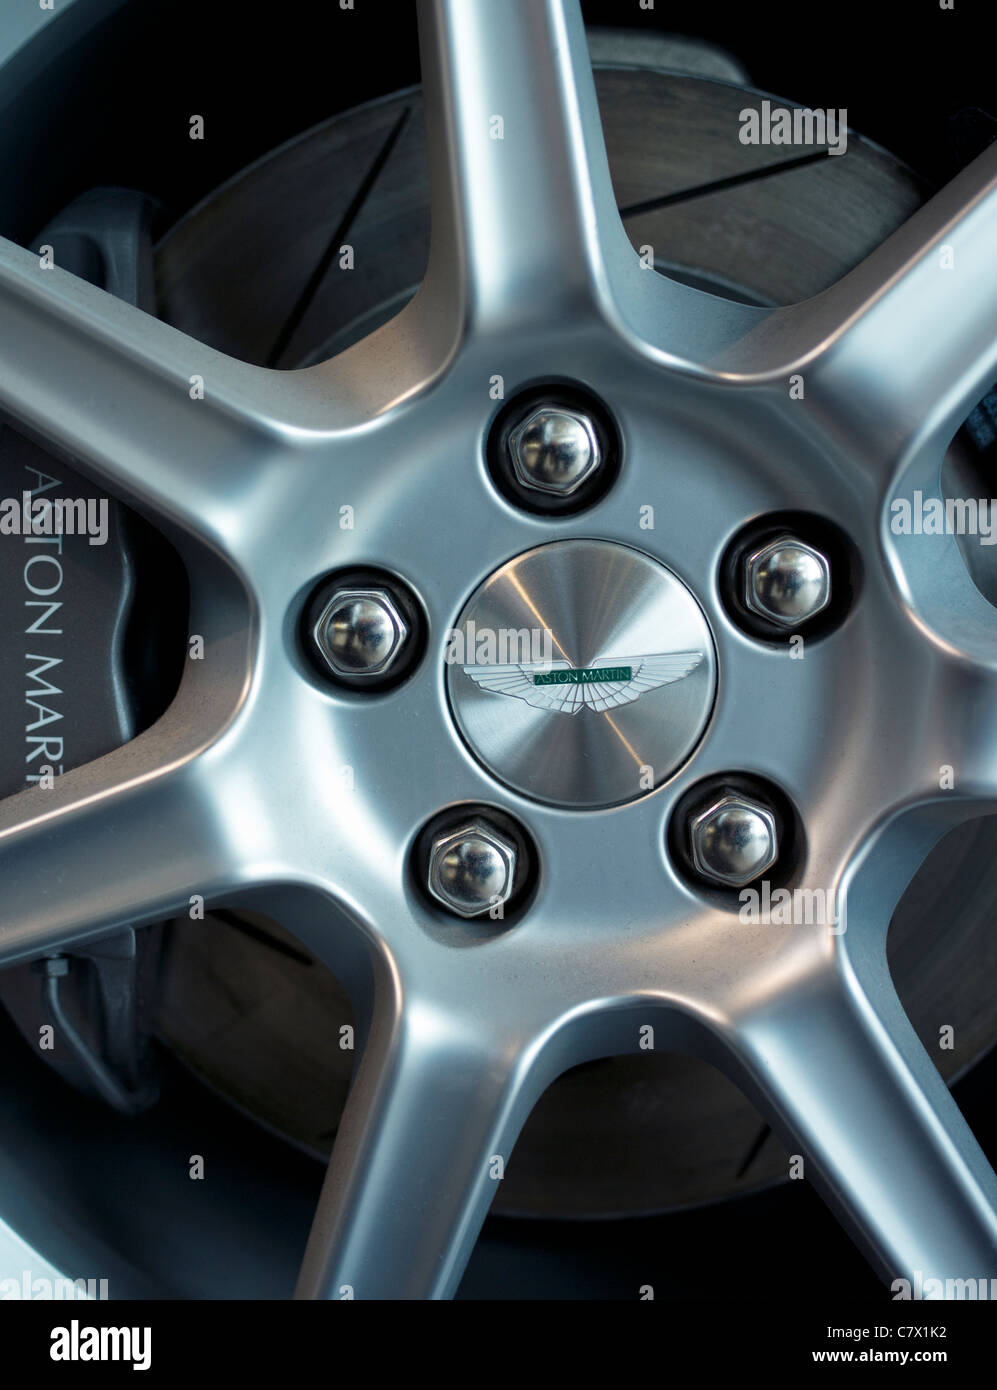 Aston Martin Wheel showing logo brakes alloy brake disc - Stock Image